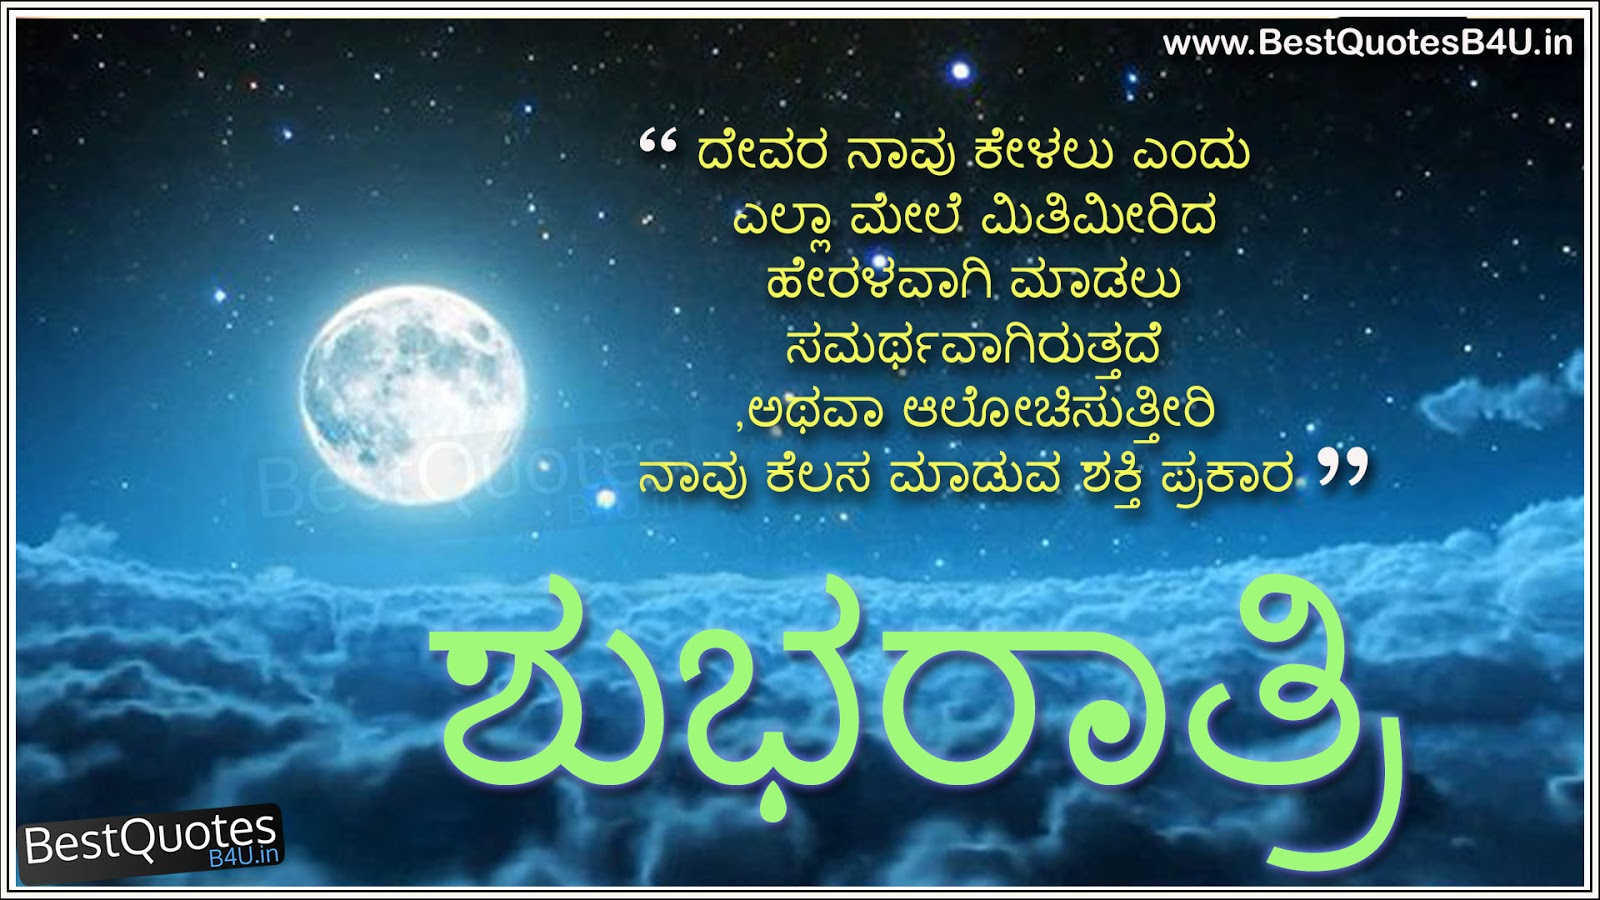 Good night quotes in kannada - Best Inspirational Quotes in Kannada ...